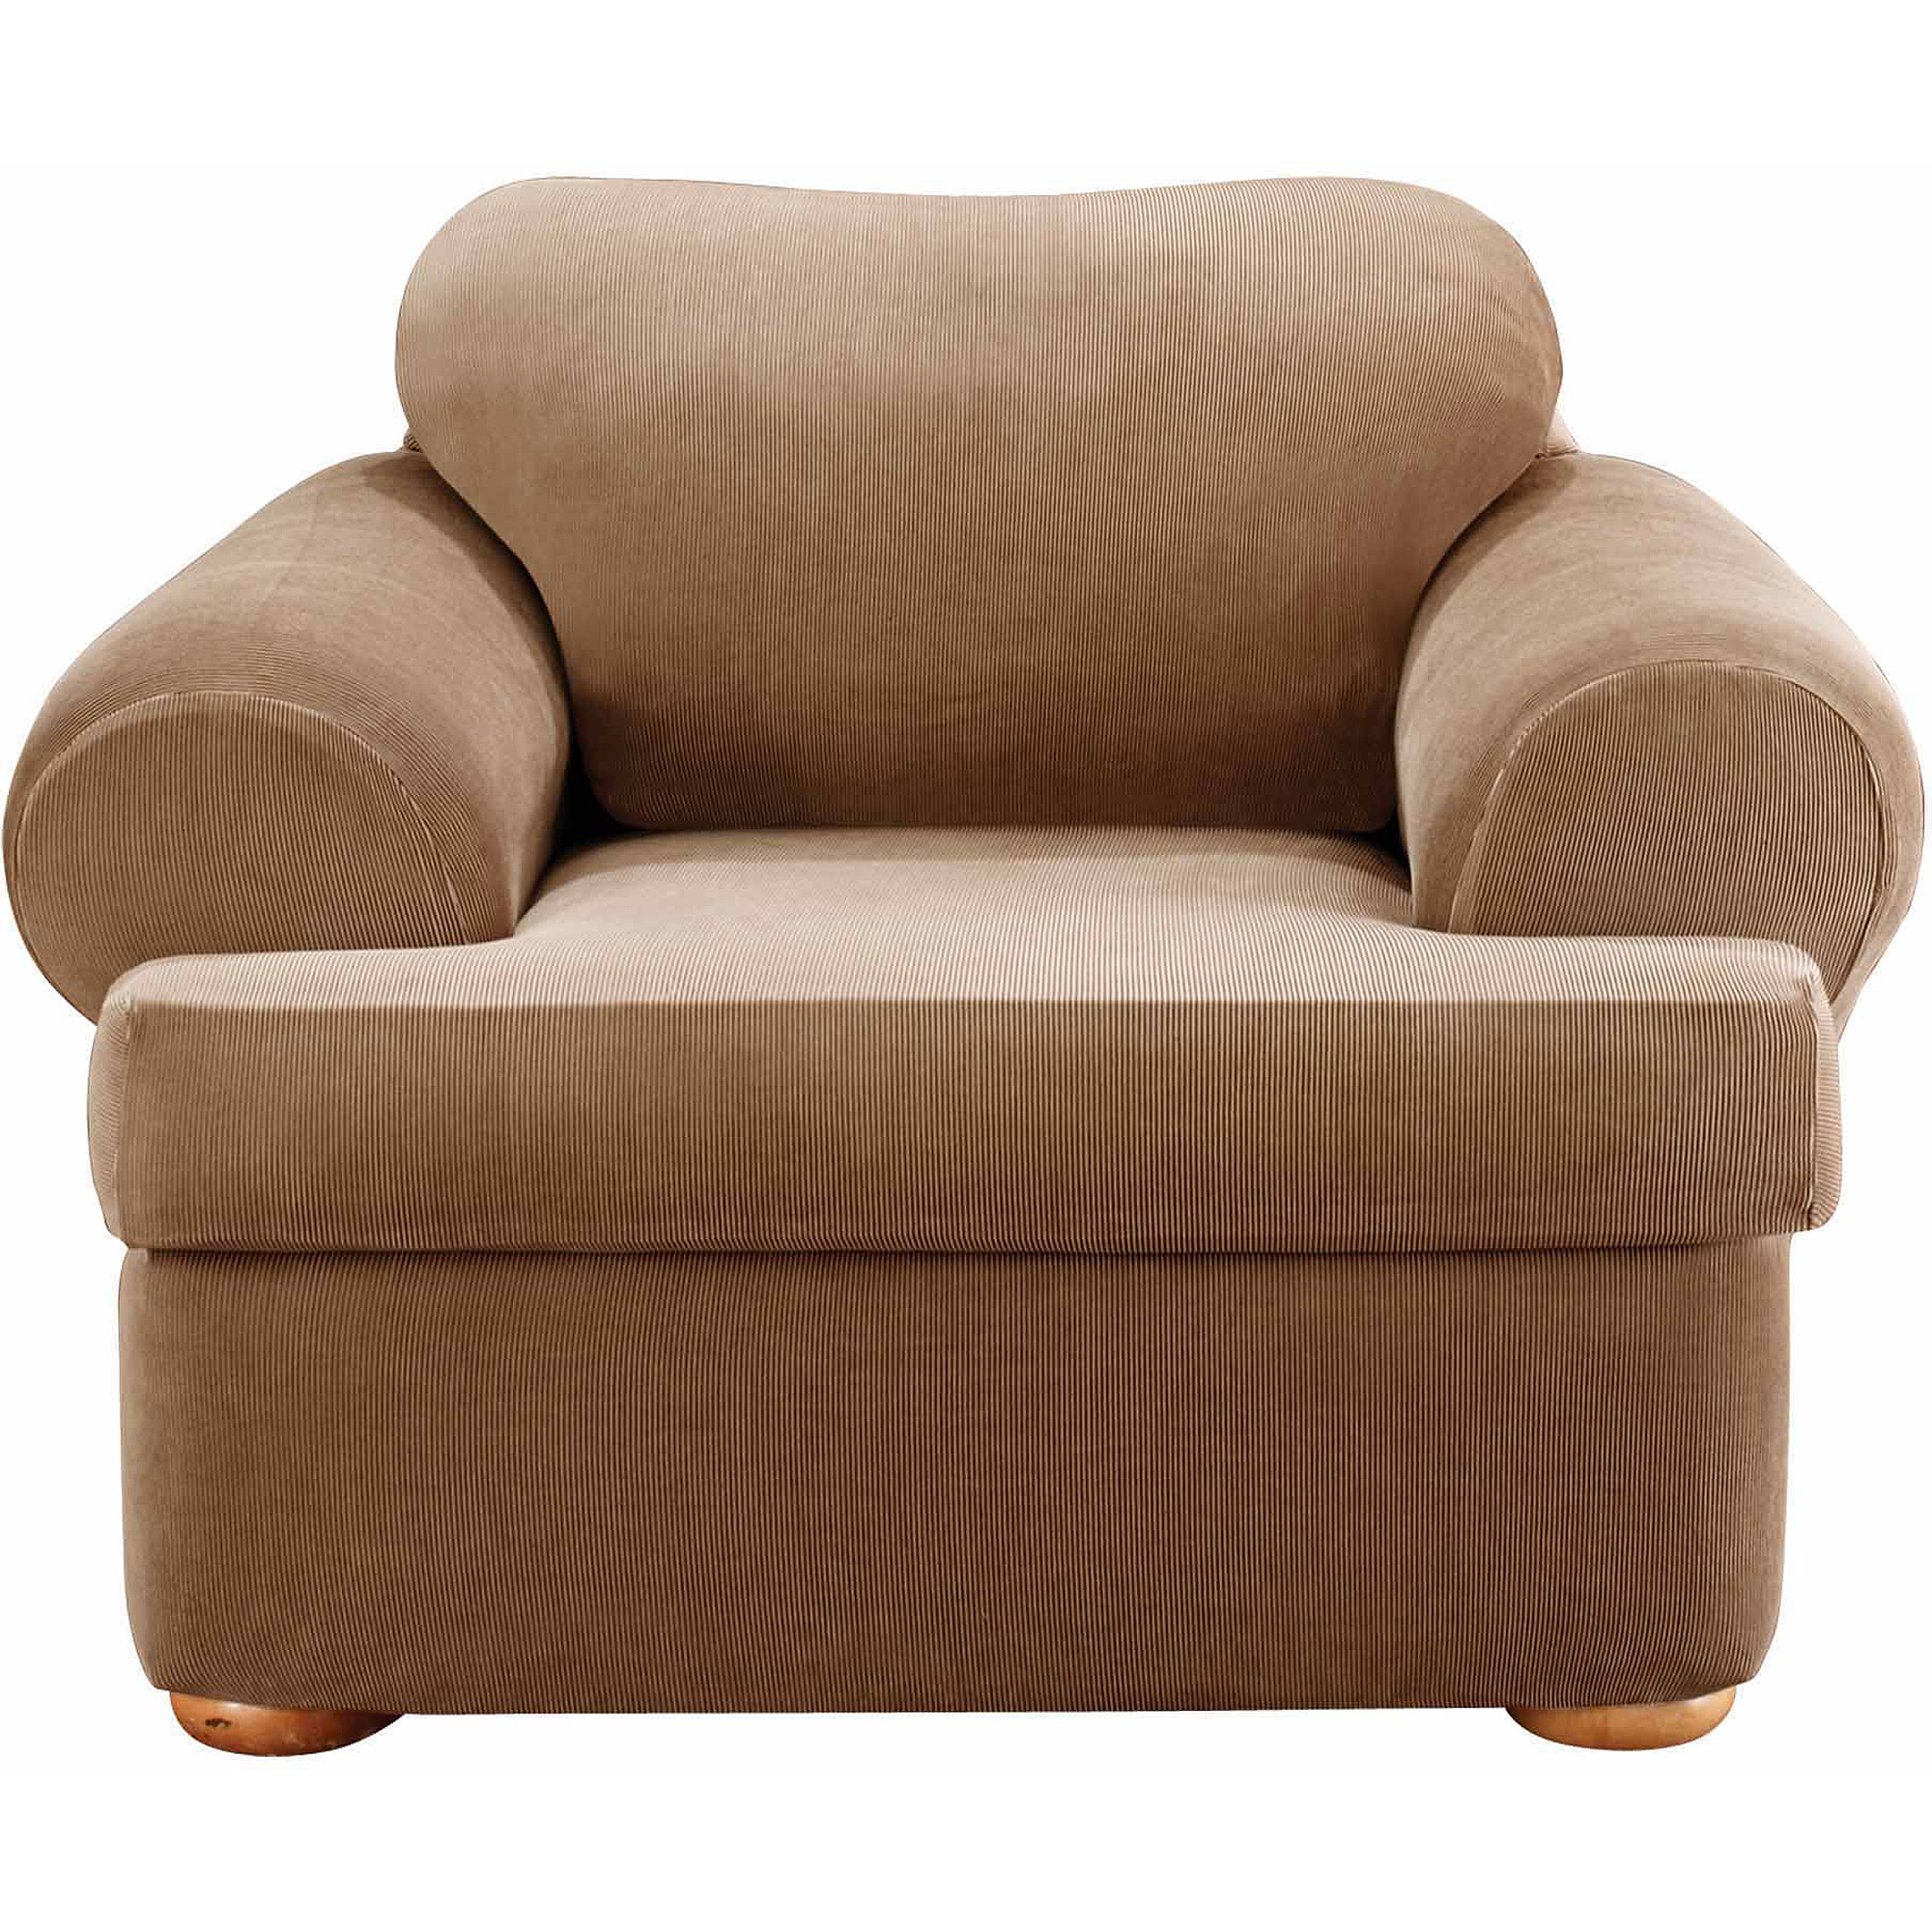 T-cushion Loveseat Slipcover | T Cushion Sofa Slipcover | Chair Cushion Slipcovers